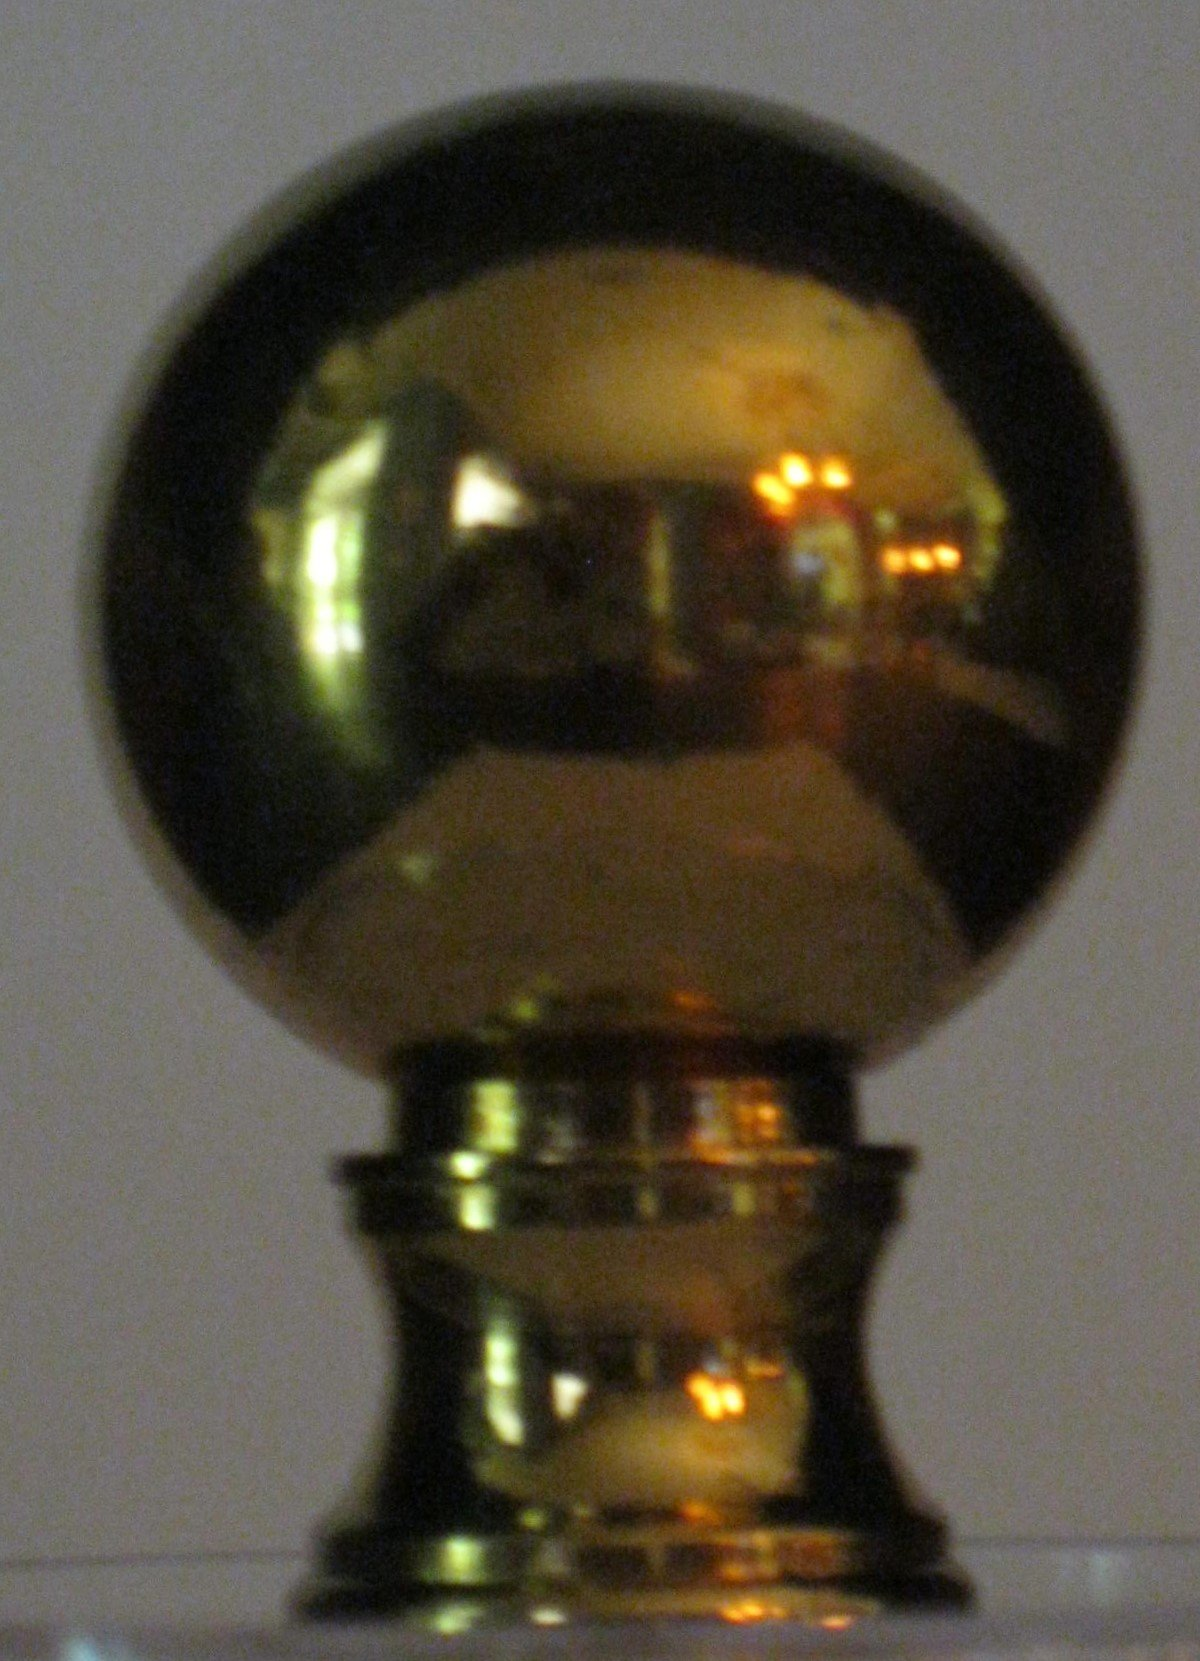 1.25 Inch Diameter Ball Lamp Finial (Polished Brass) 1.75 Inches High